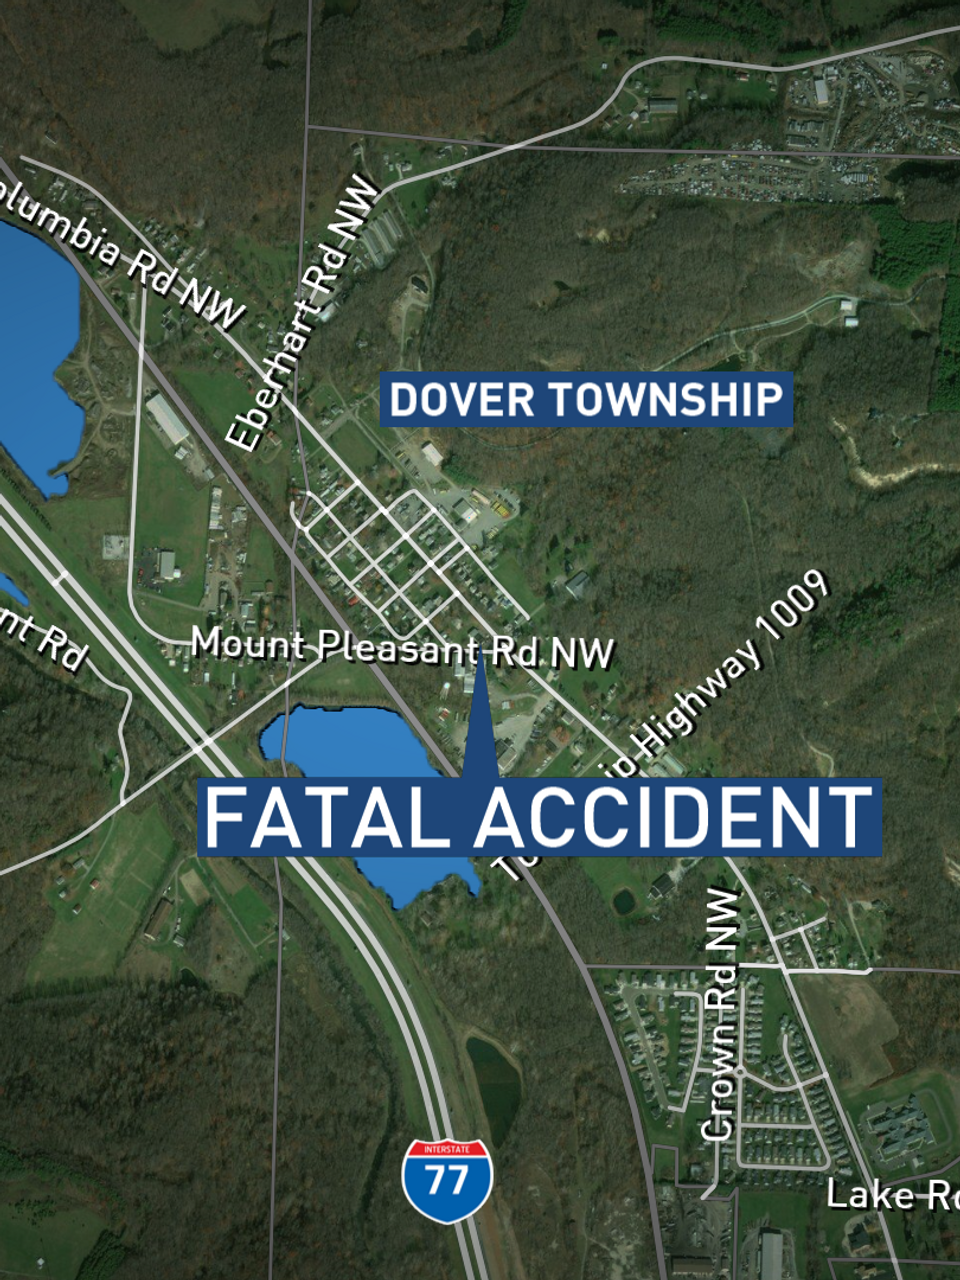 Dover Ohio Christmas Parade 2020 One dead following motorcycle accident in Tuscarawas Co. | WTOV